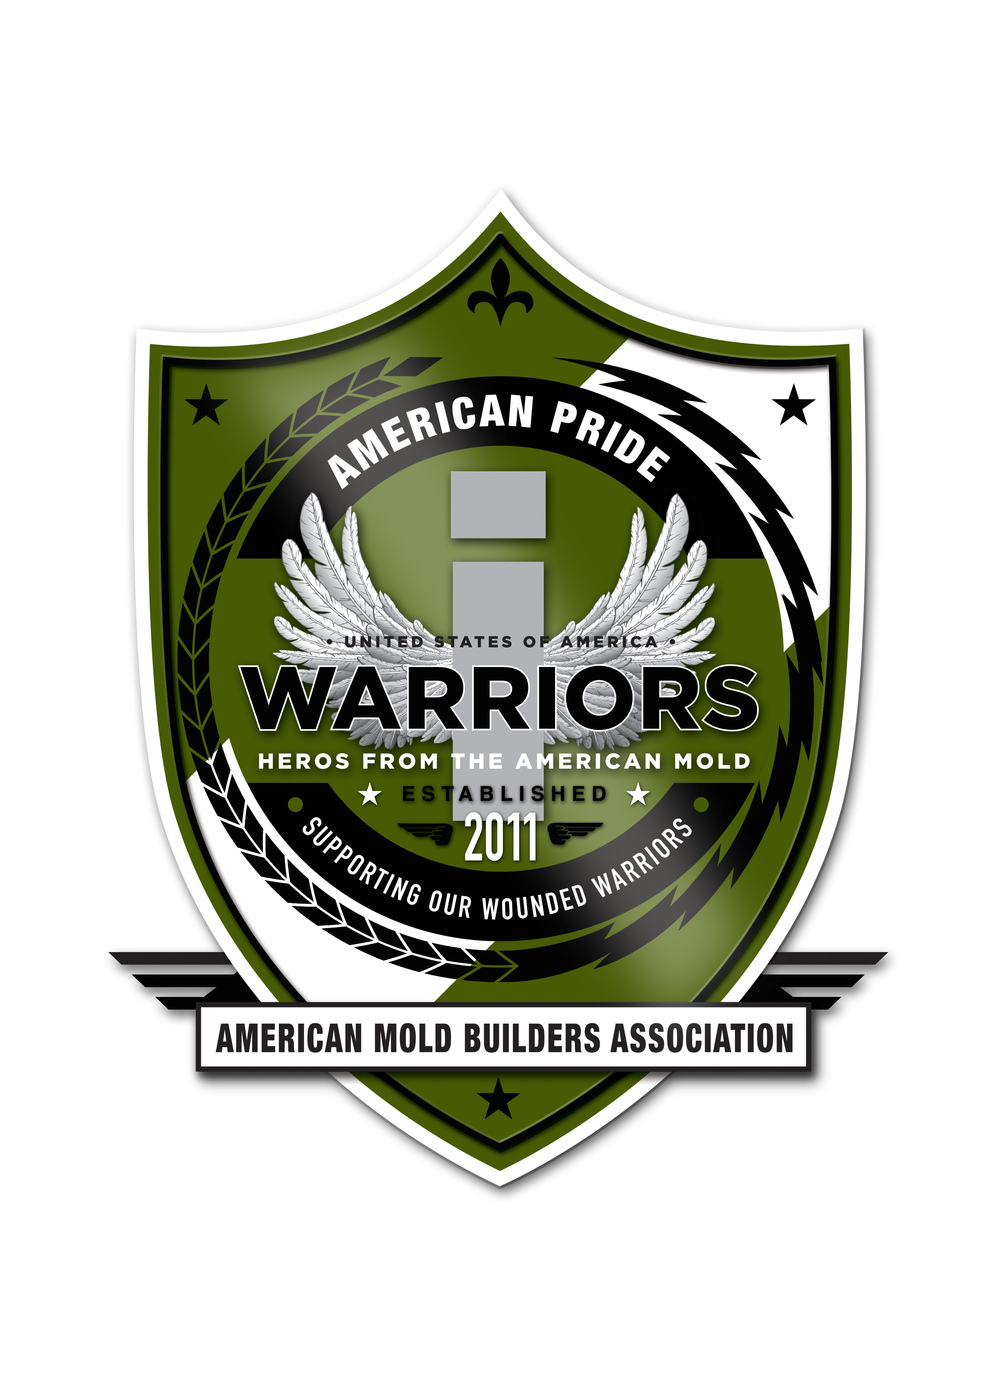 iWarriors 5 year mark